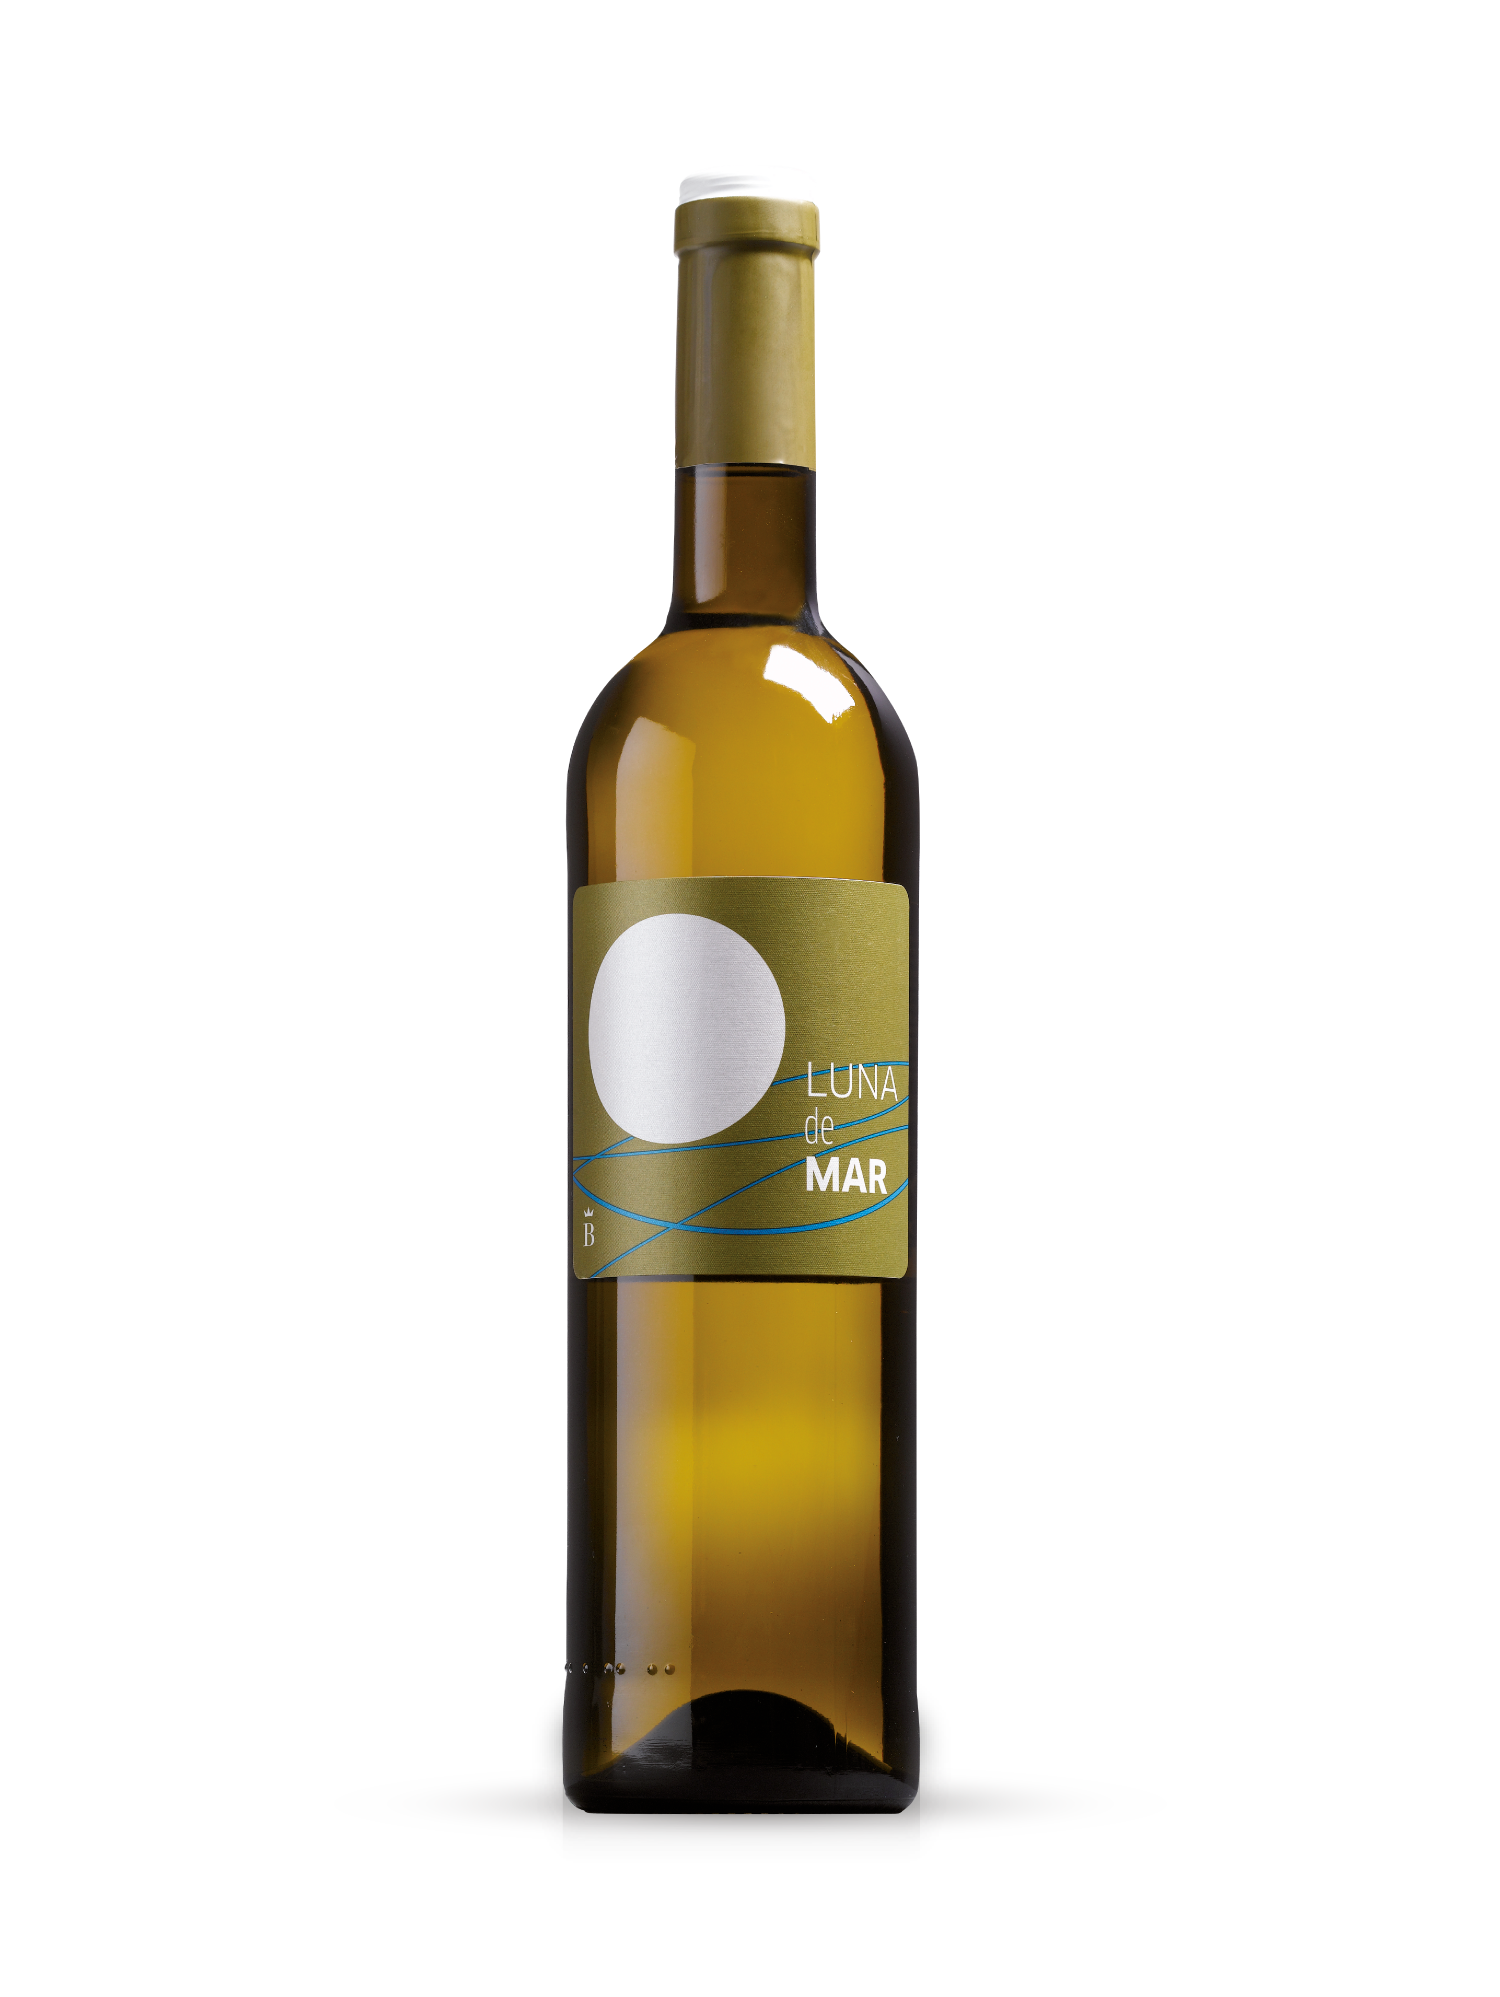 Artisan fruity white wine Luna de Mar